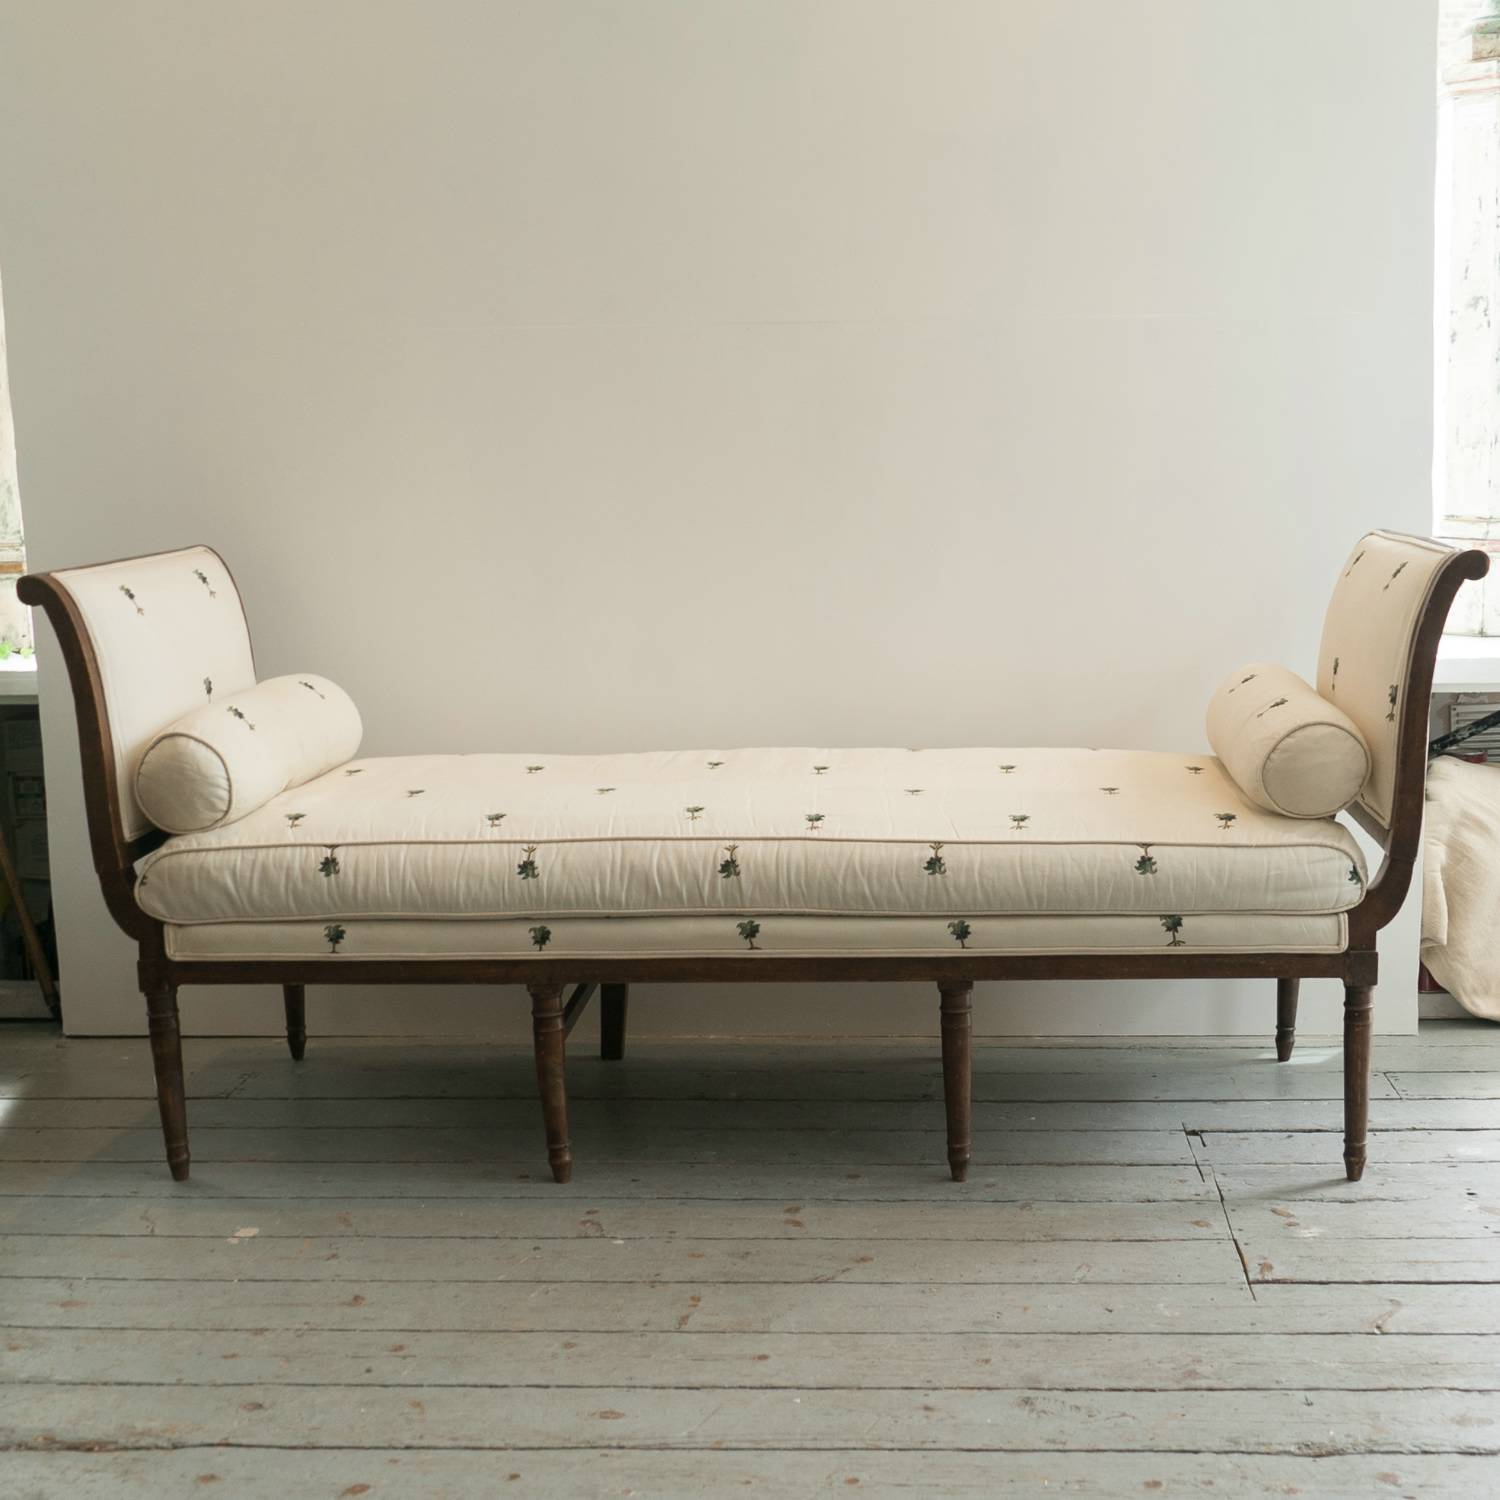 pin french chaise printed script calligraphy furniture longue sofa linen